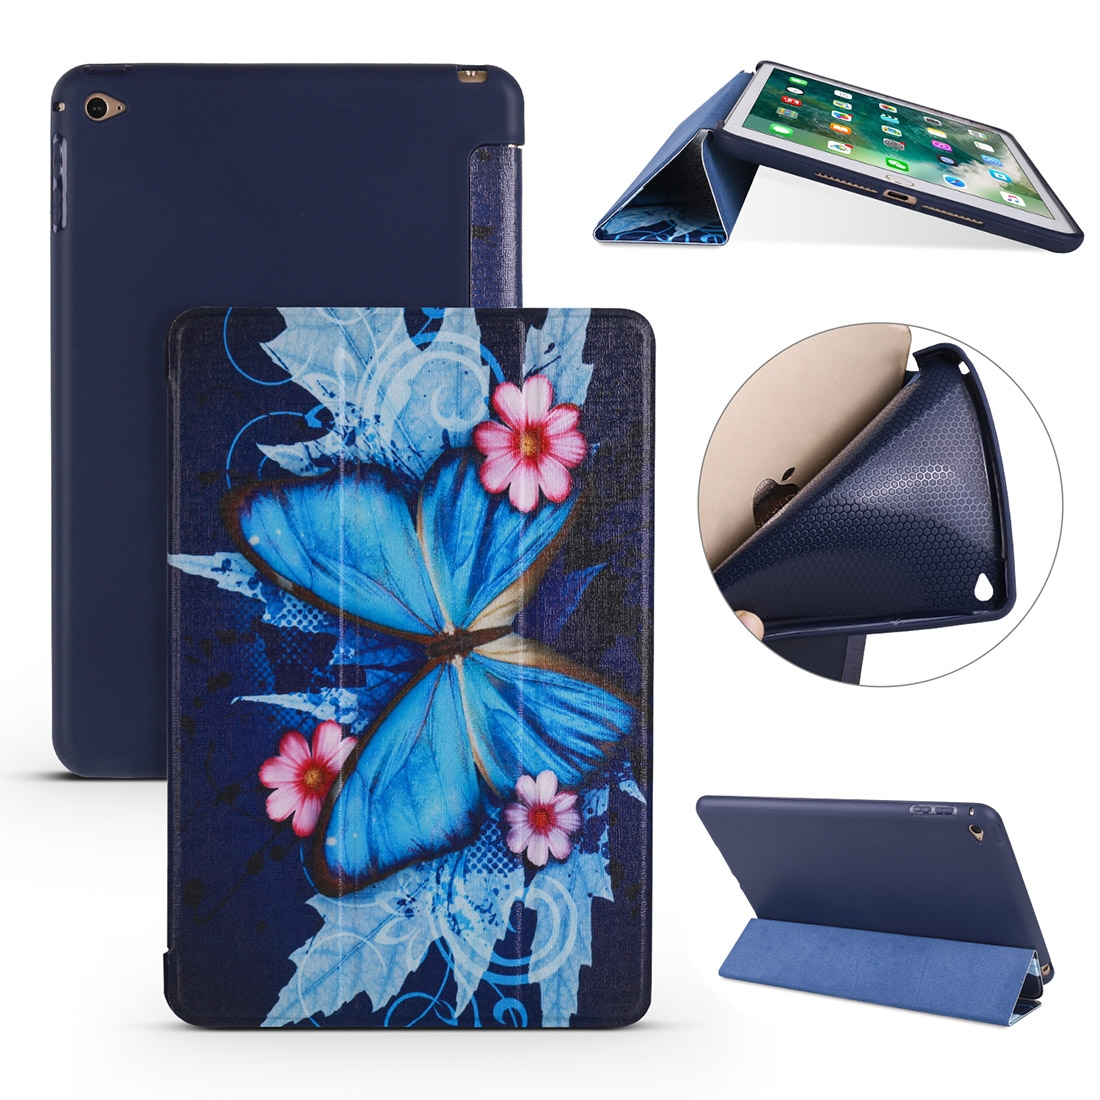 Butterflies Leather iPad Mini 4 Case, with Tri-Fold Honeycomb Durable Casing